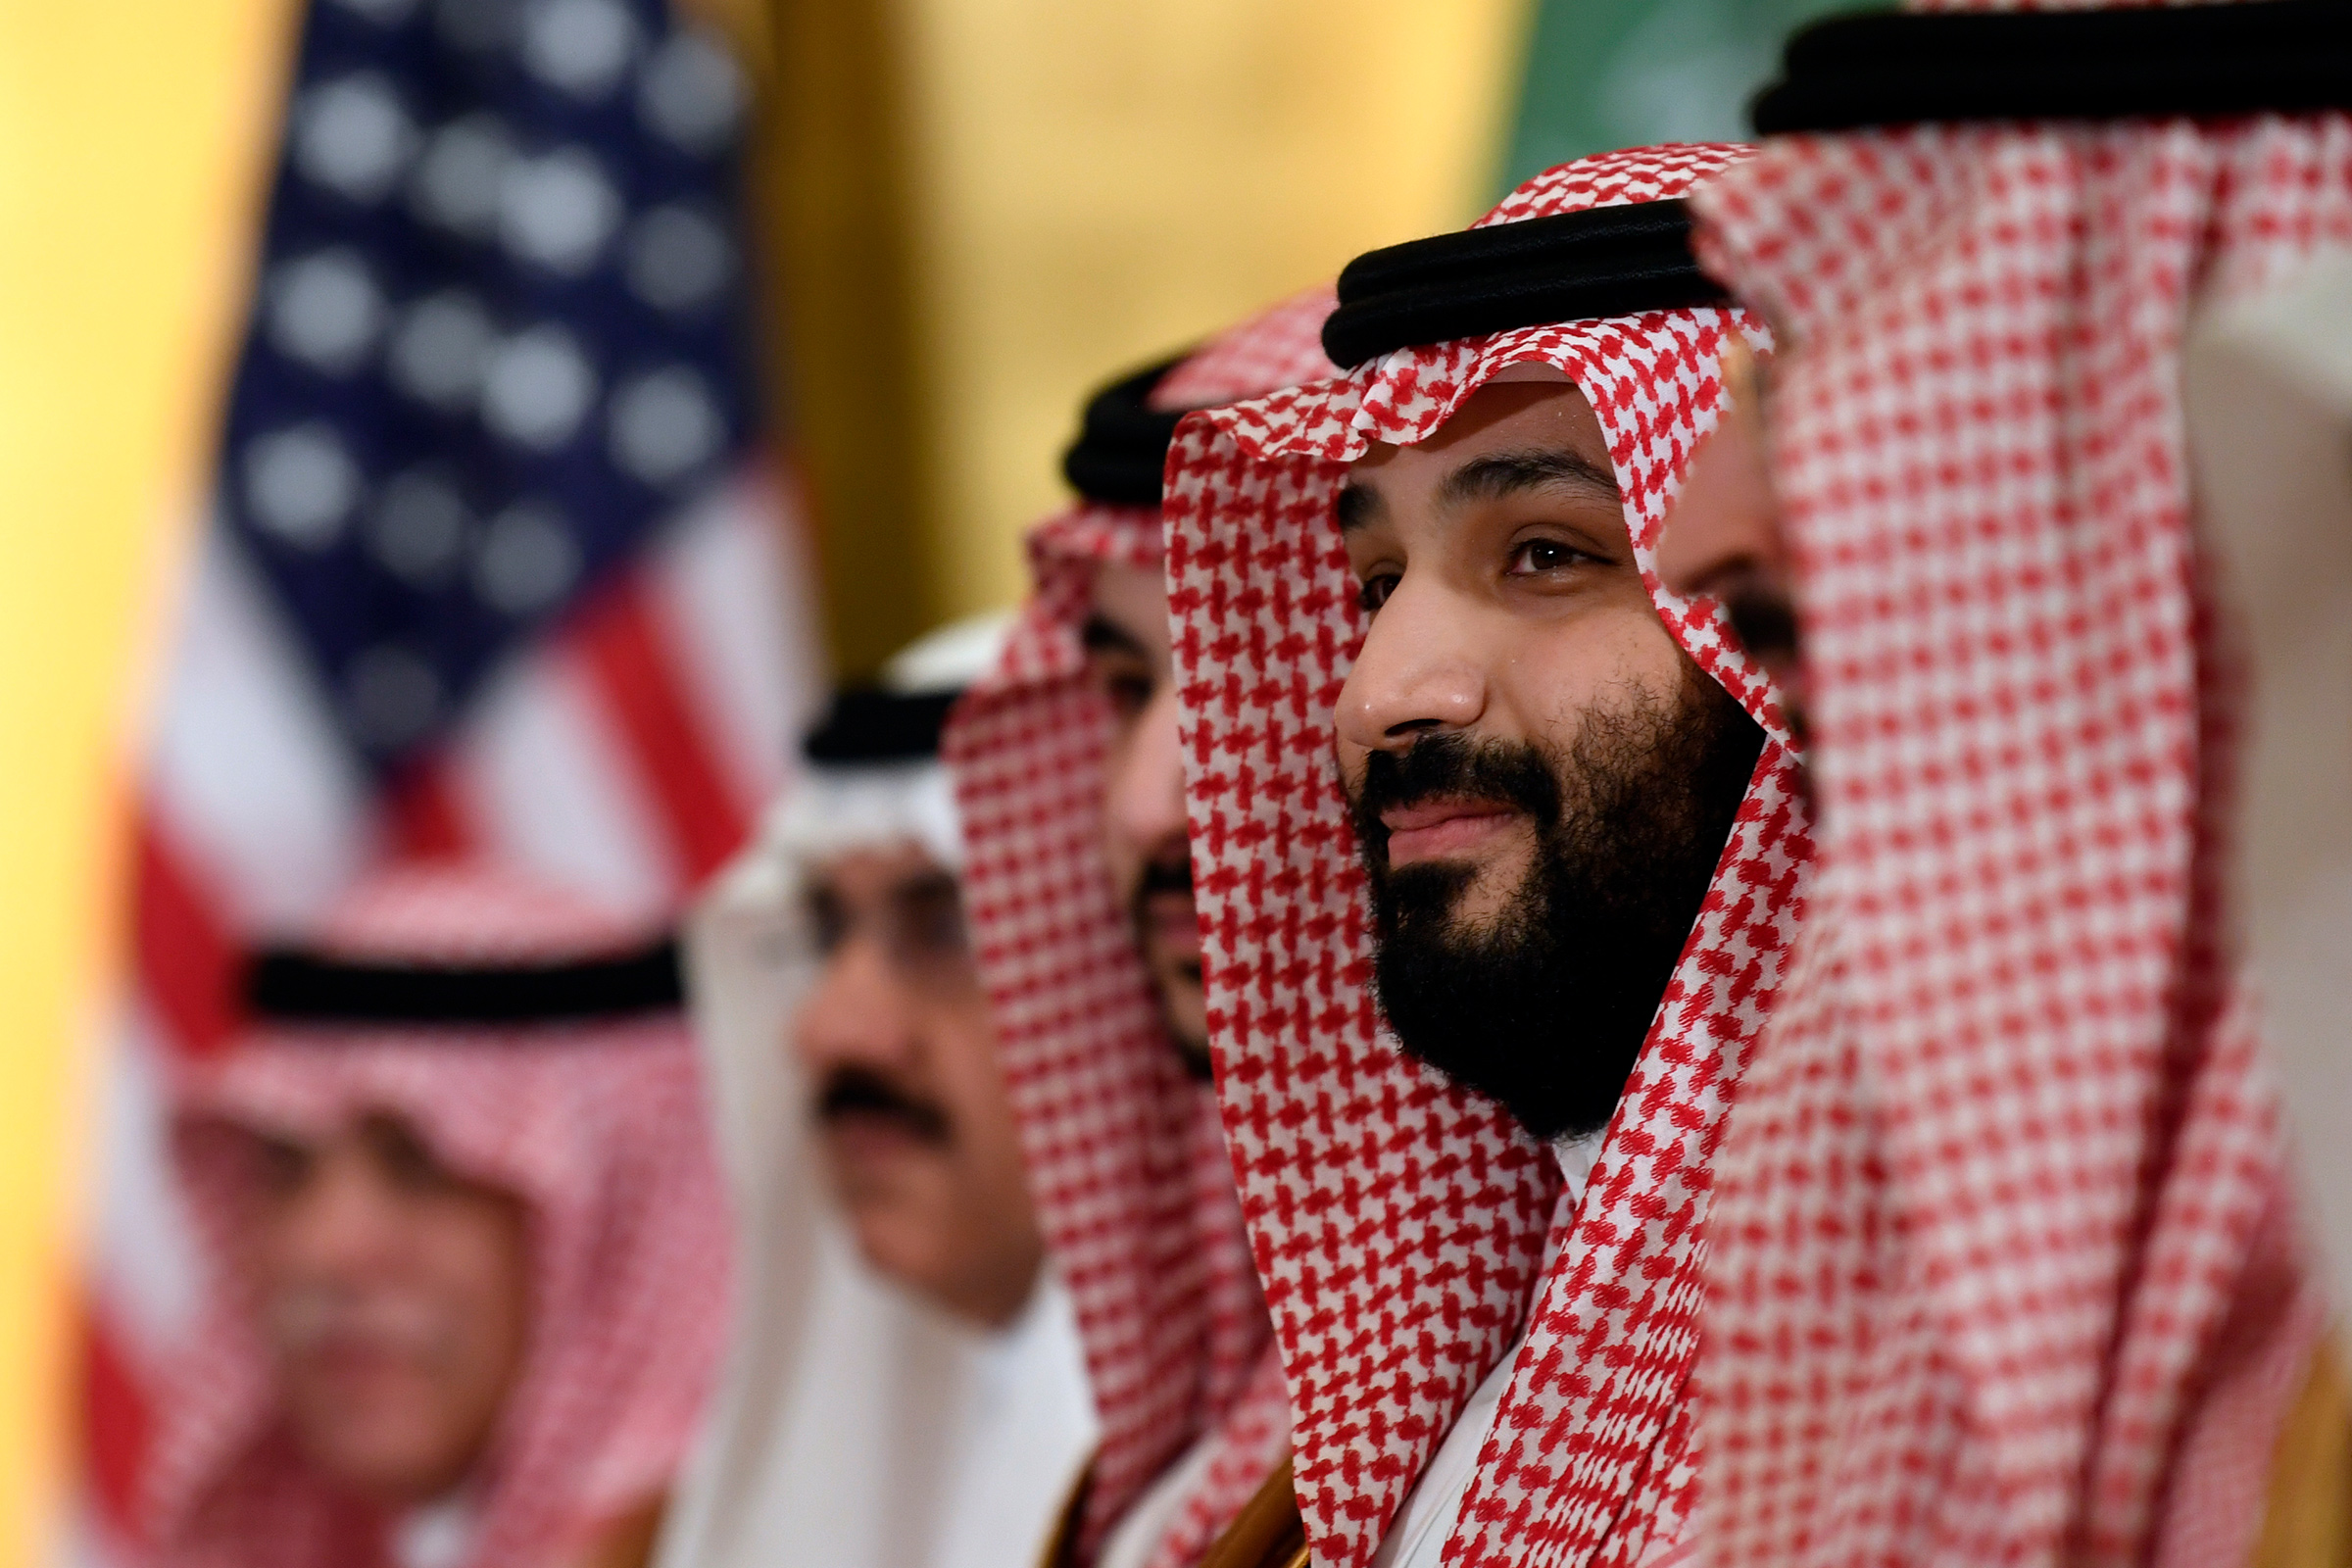 In this June 29, 2019 photo, Saudi Arabia's Crown Prince Mohammed bin Salman listens during his meeting with President Donald Trump on the sidelines of the G-20 summit in Osaka, Japan